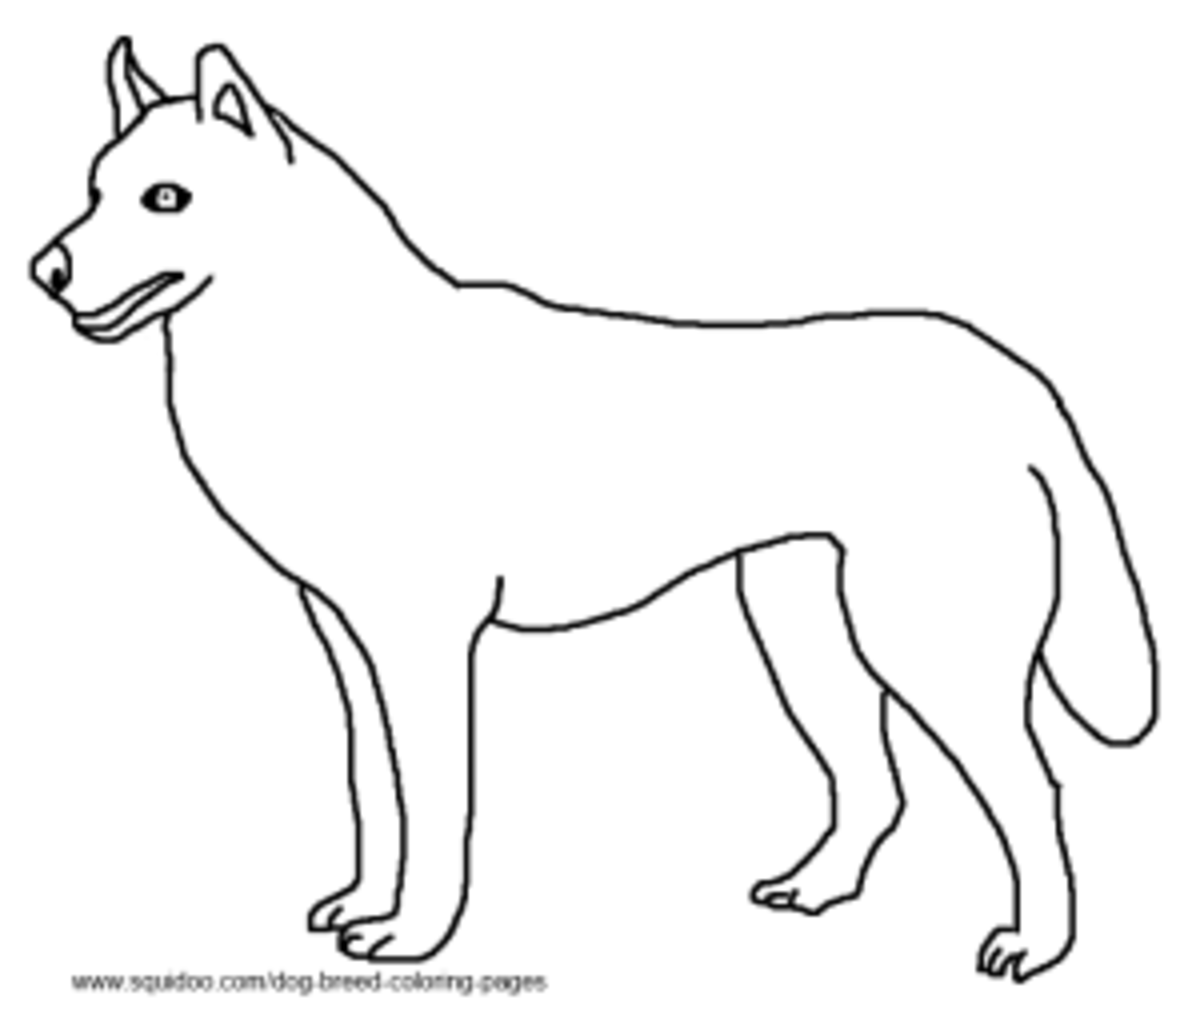 Dog breed coloring pages hubpages for Husky puppy coloring pages